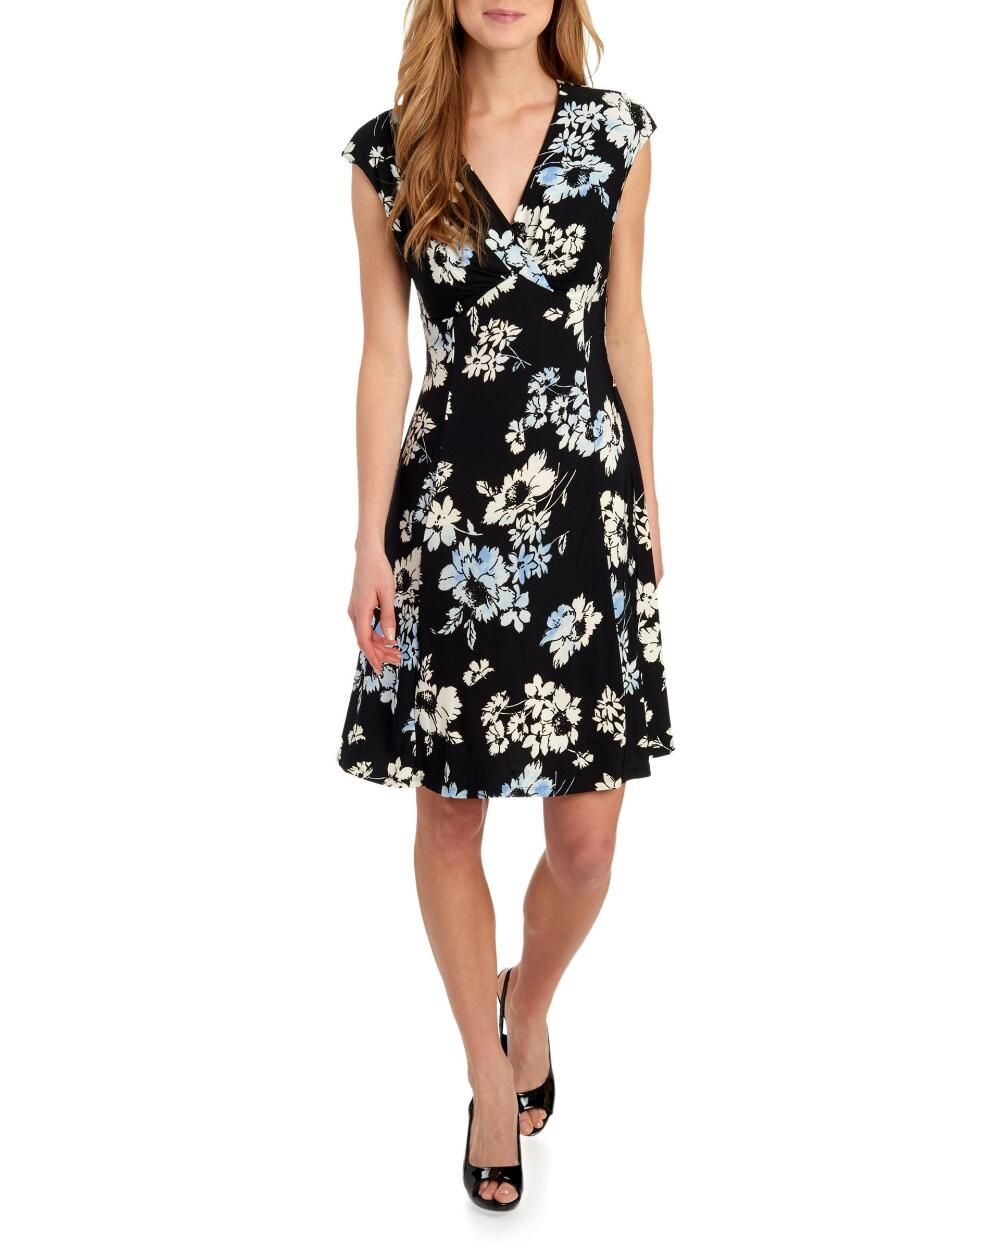 Enzo Cap Sleeve Floral Fit And Flare Dress Dresses Clothing Women Stein Mart Fit And Flare Dress Clothes For Women Short Sleeve Dresses [ 1250 x 1000 Pixel ]